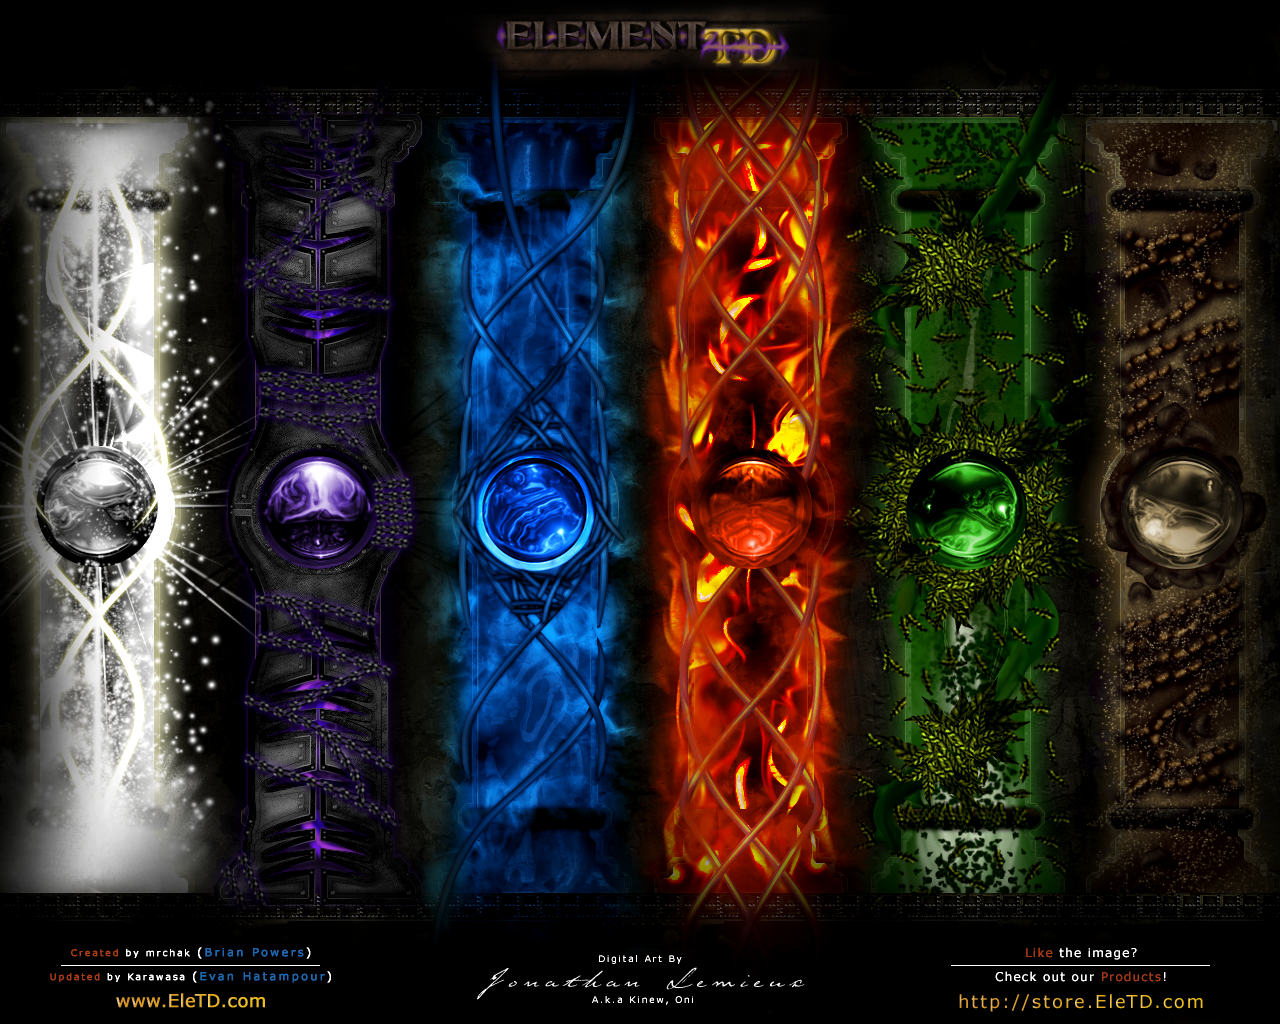 Elemental Pictures HDQ Cover 1280x1024